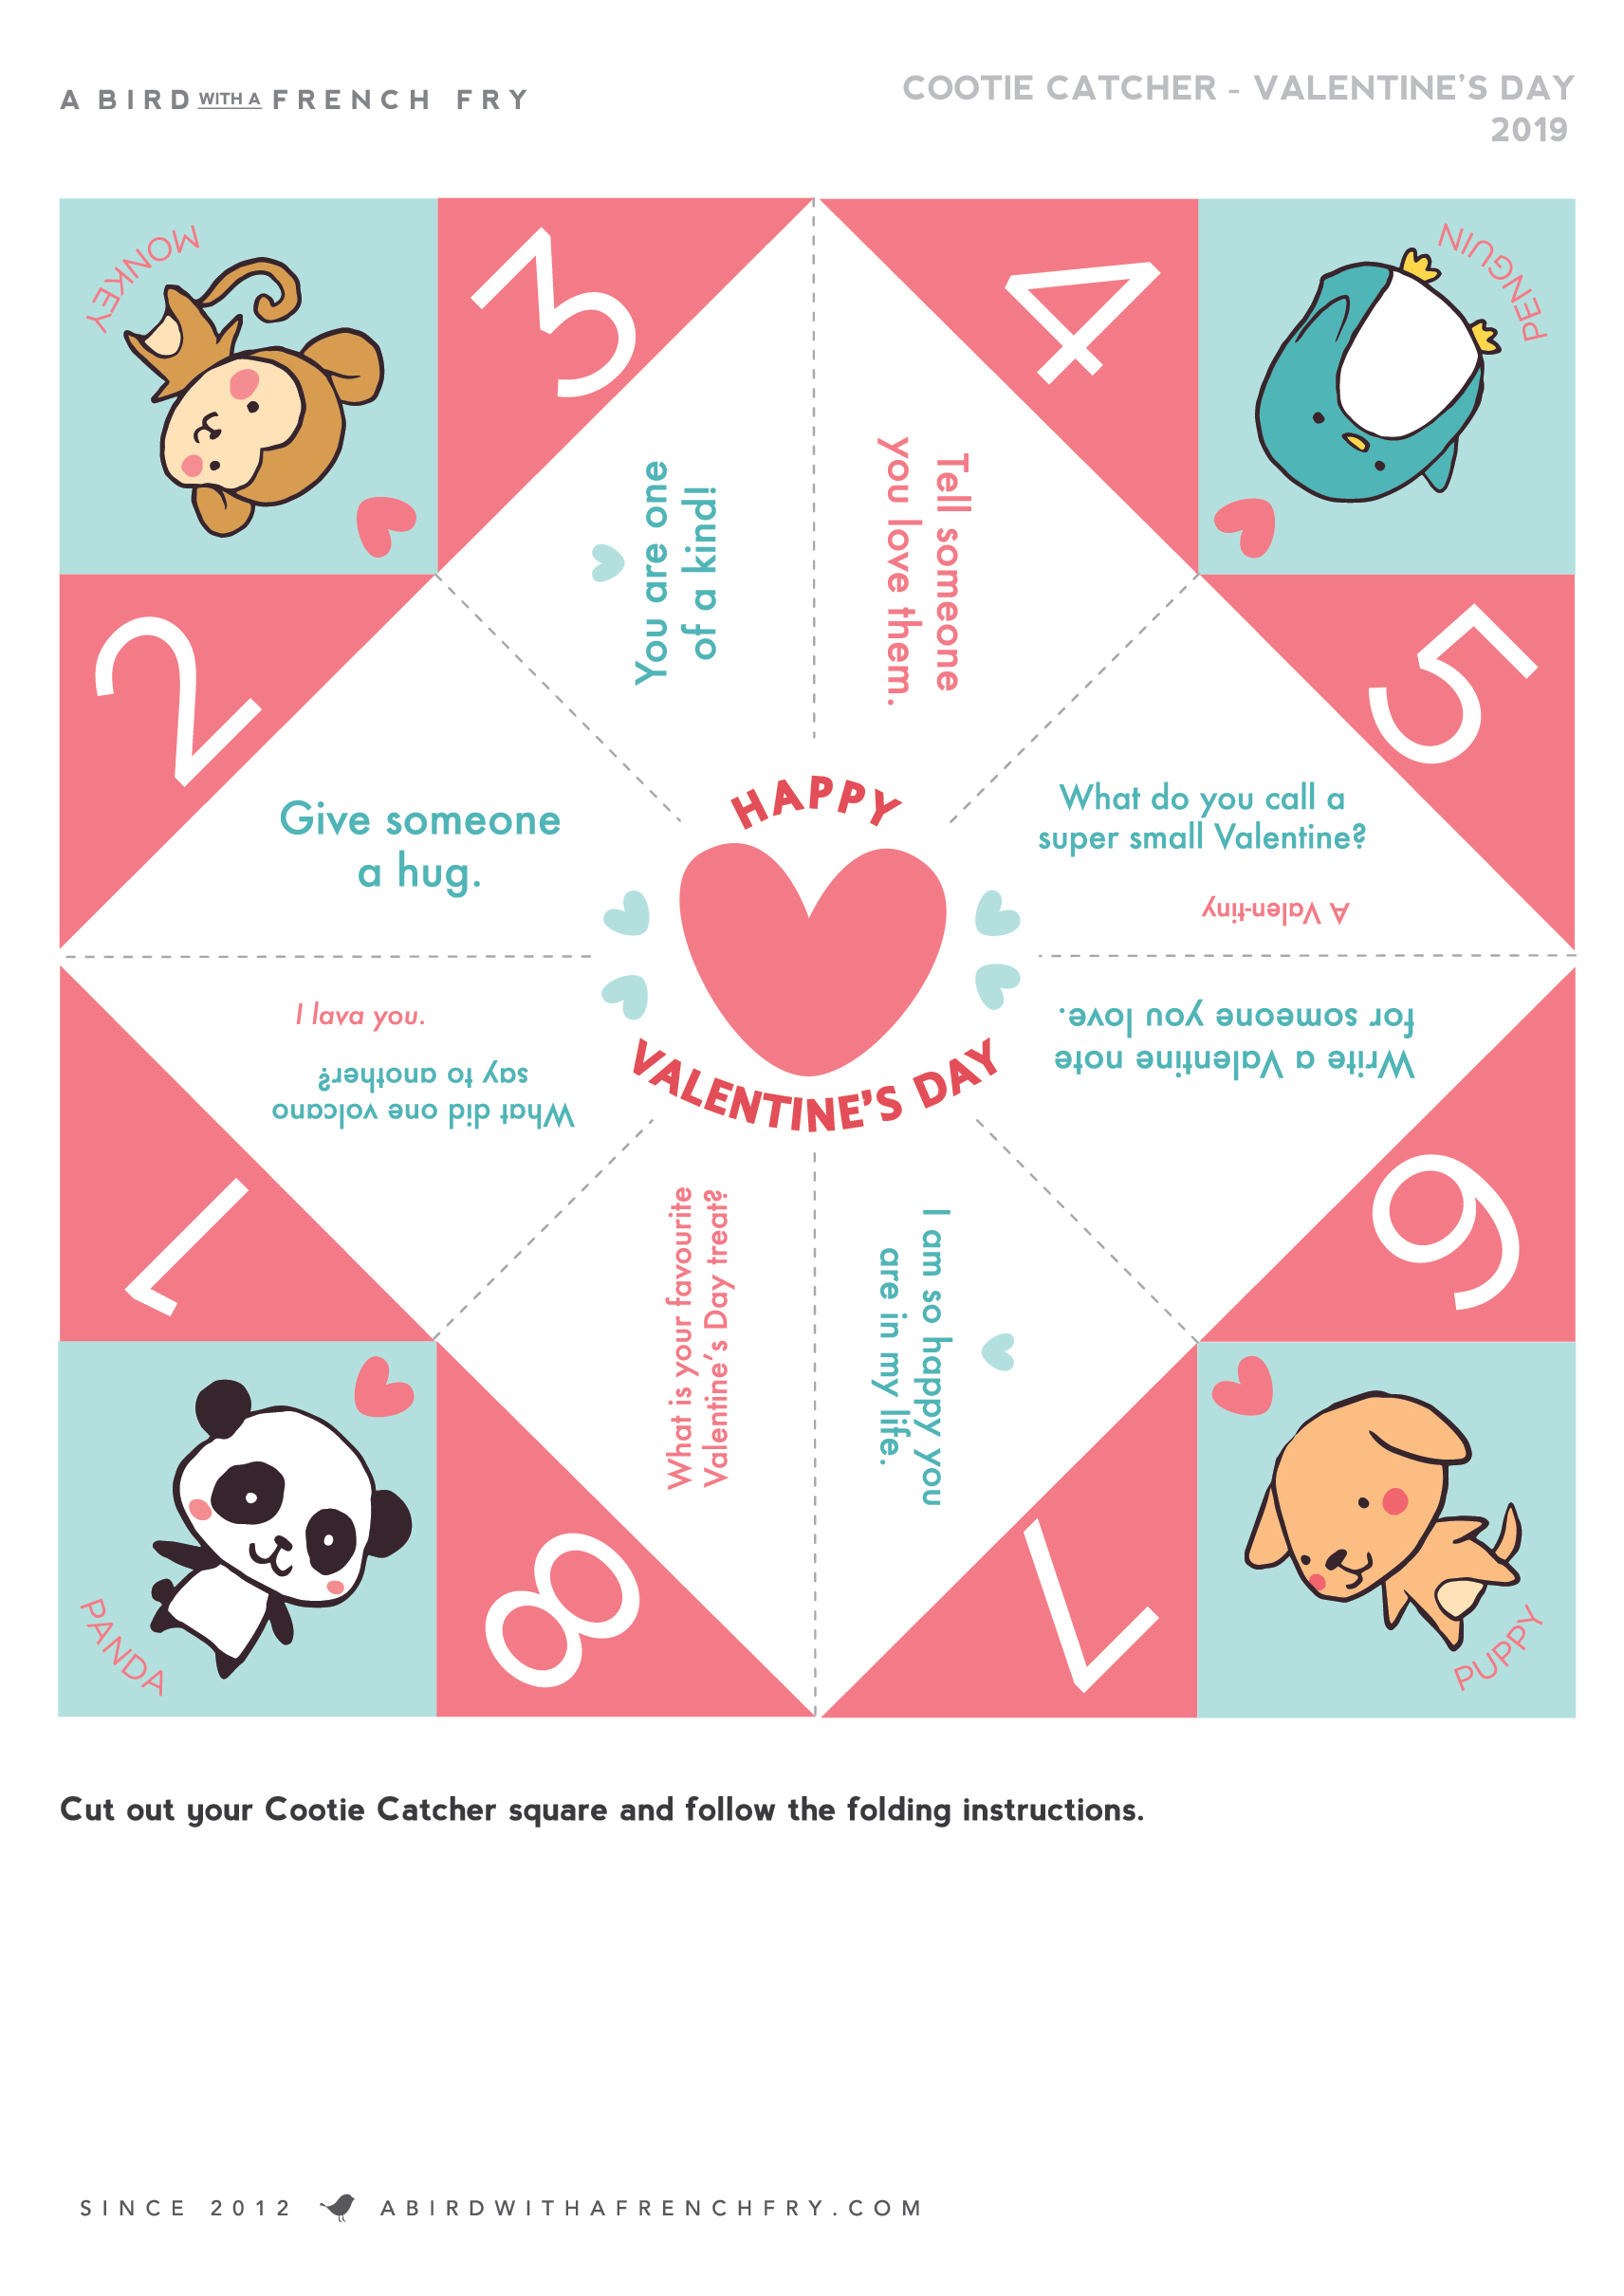 picture regarding Cootie Catcher Printable identified as Valentines Working day Cootie Catcher Cost-free Printable